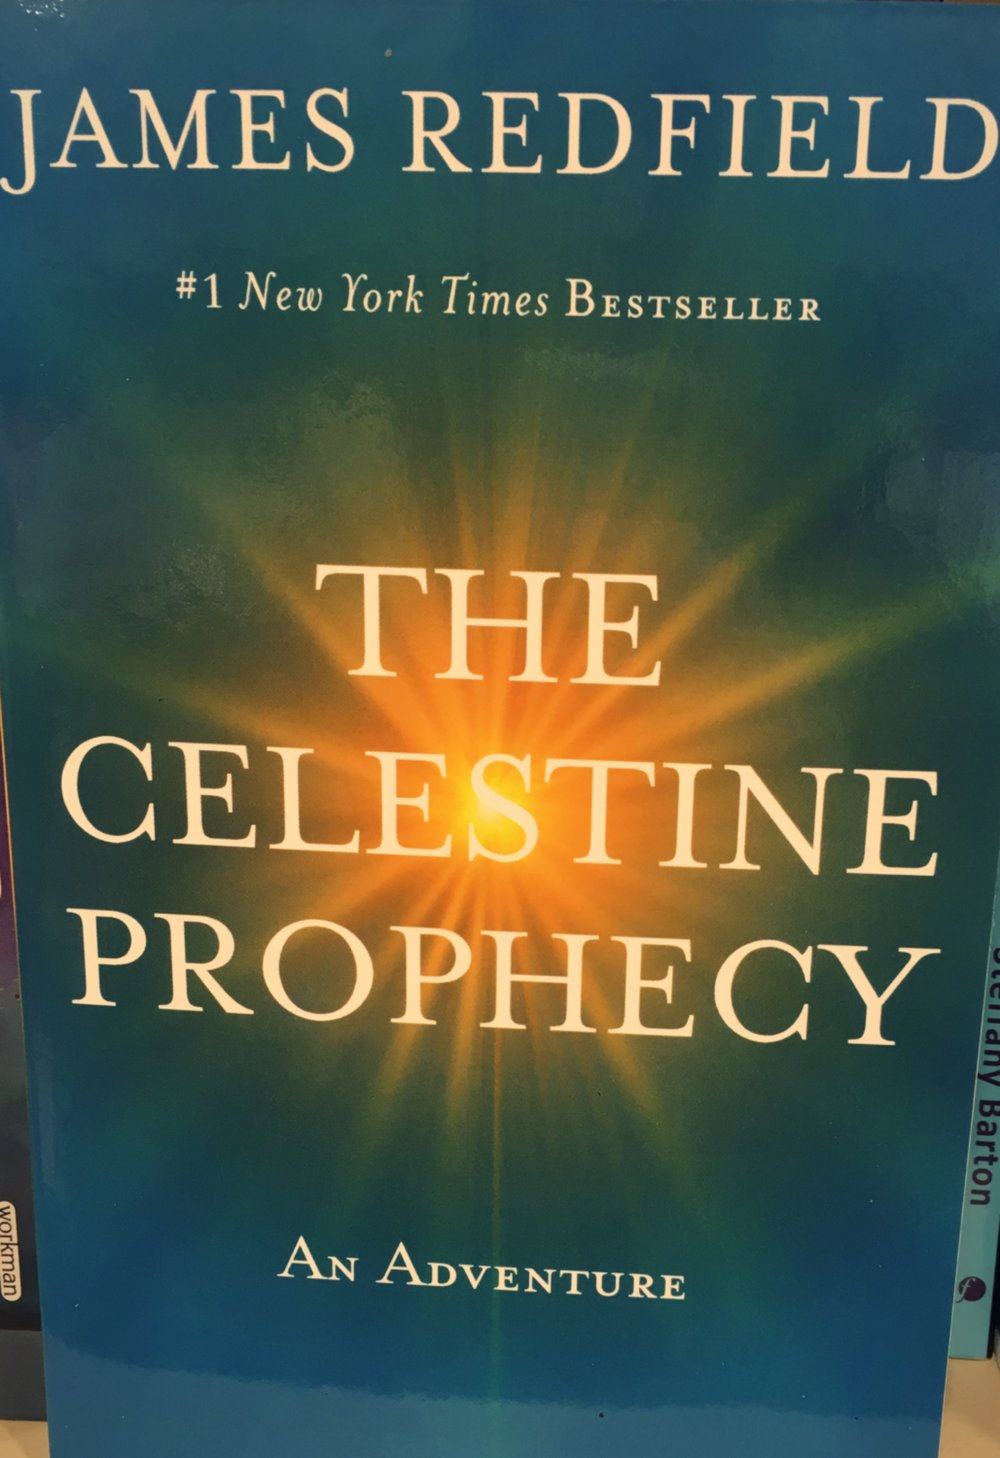 The Celestine Prophecy BOOK.jpg